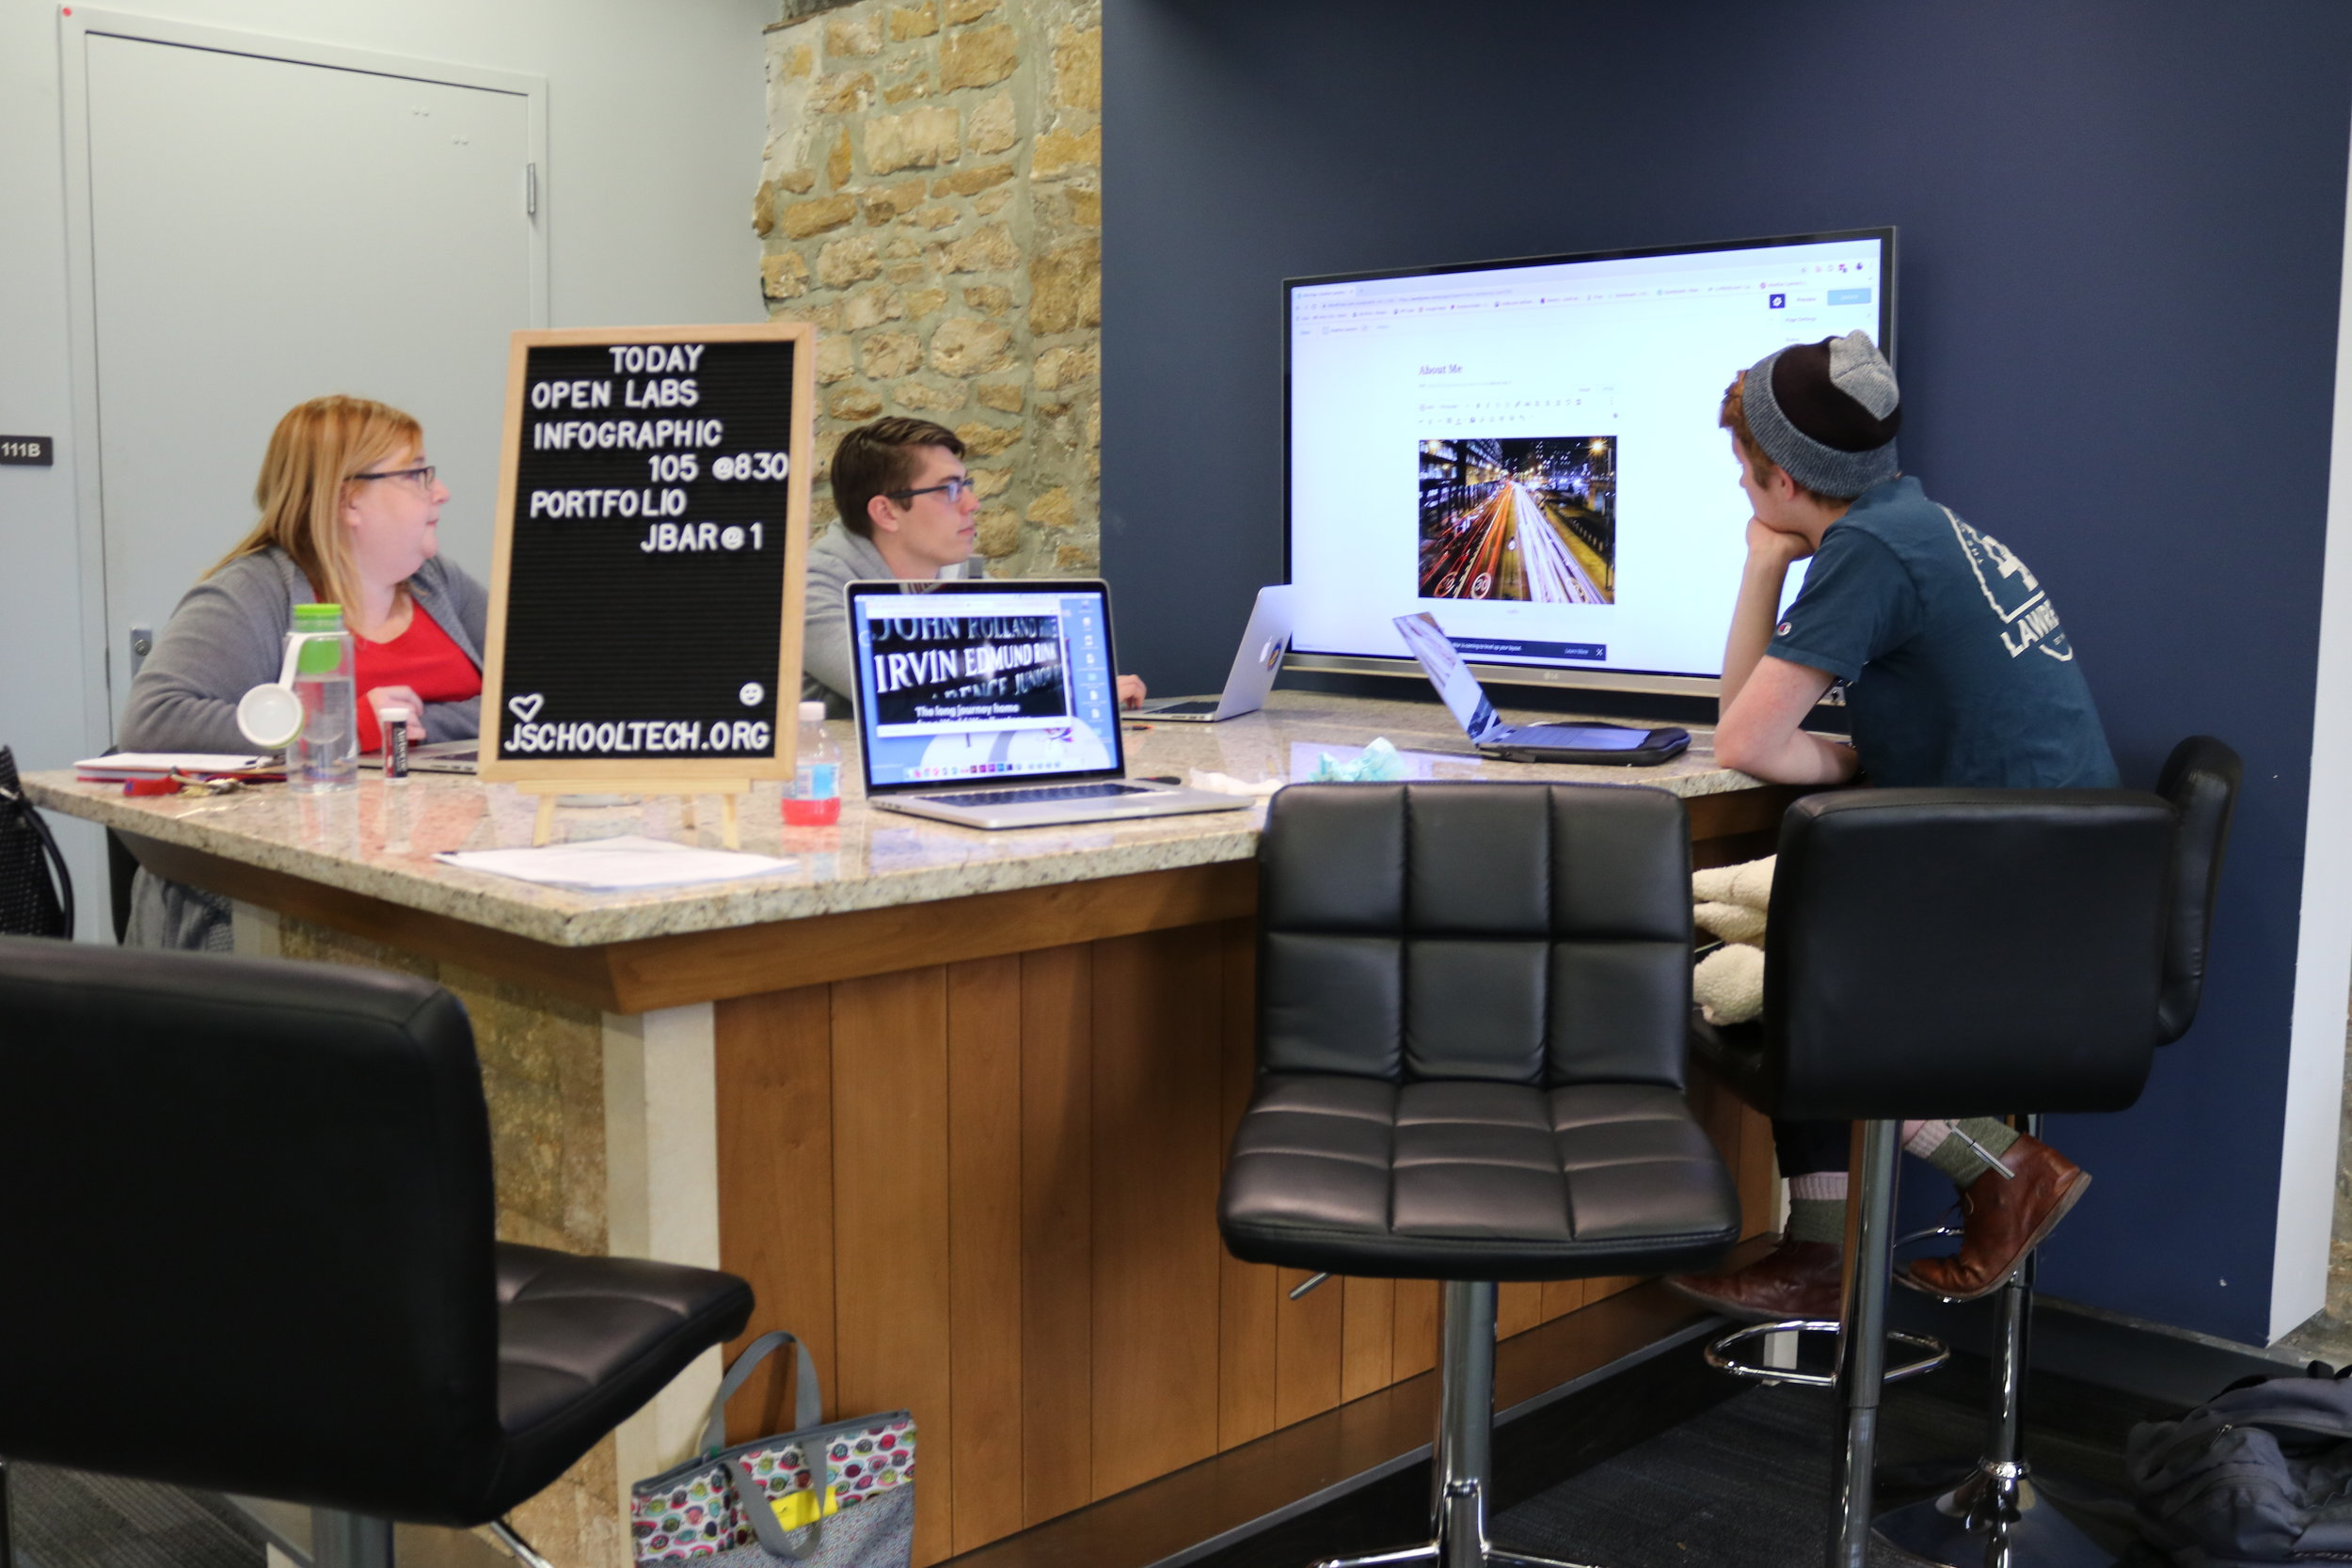 Heather Lawrenz (j'96), J-School digital media specialist, assists students with questions about infographics.